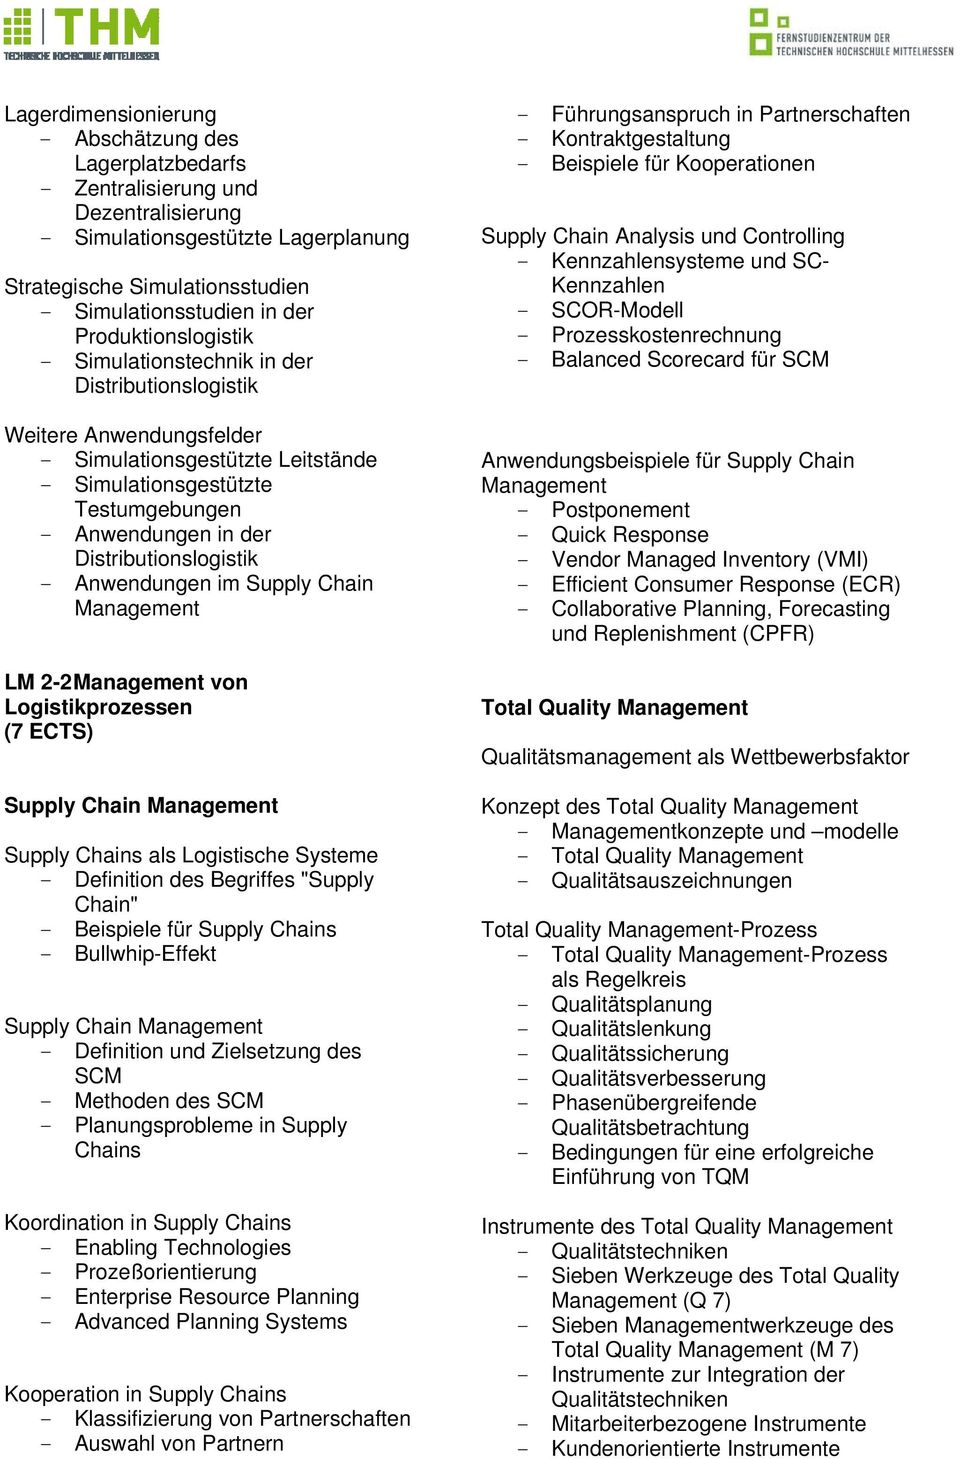 Distributionslogistik - Anwendungen im Supply Chain Management LM 2-2 Management von Logistikprozessen (7 ECTS) Supply Chain Management Supply Chains als Logistische Systeme - Definition des